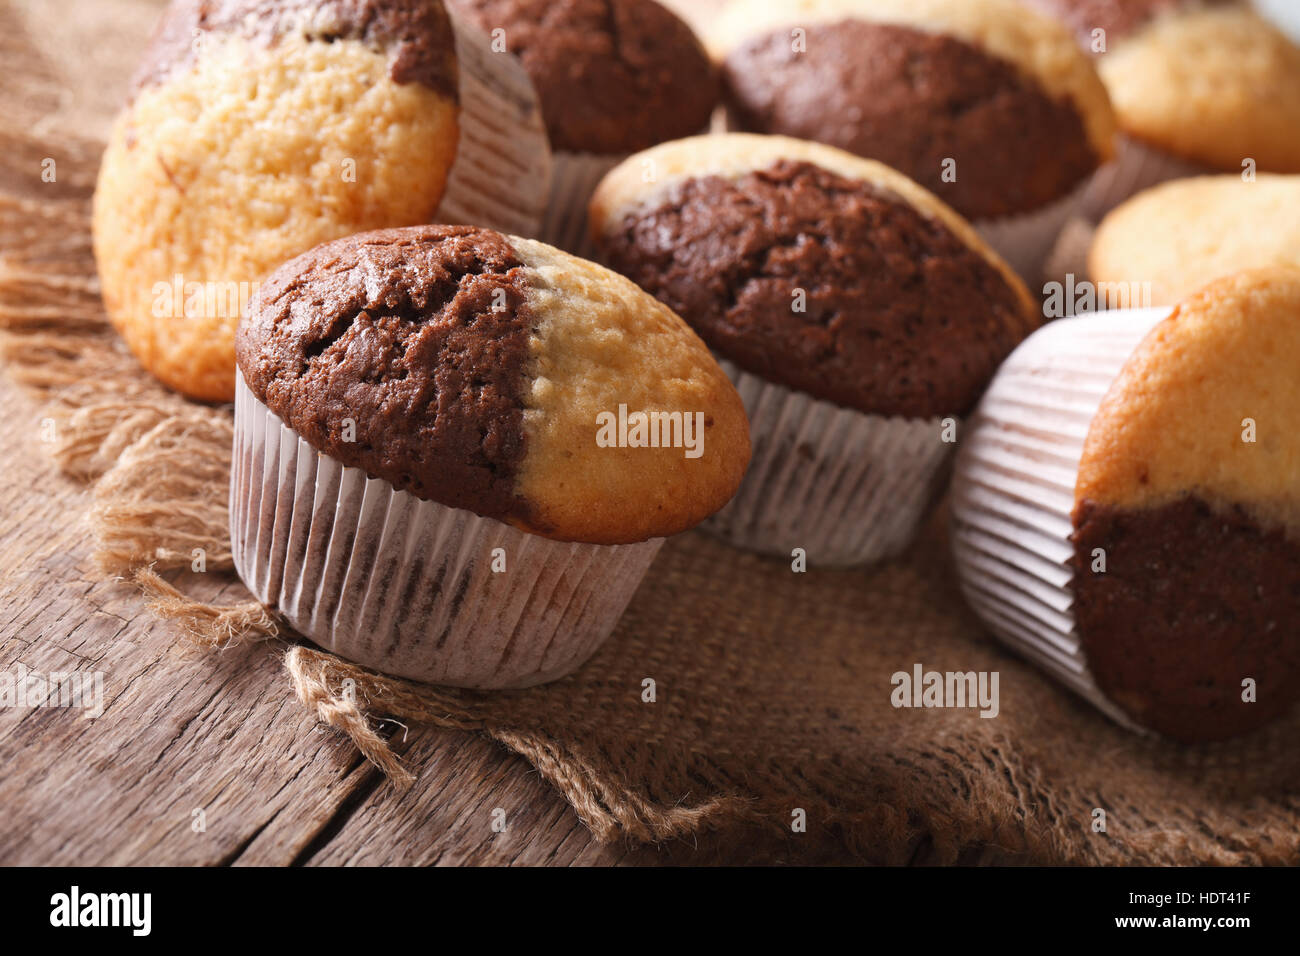 Delicious chocolate orange muffin on the table close-up, horizontal - Stock Image